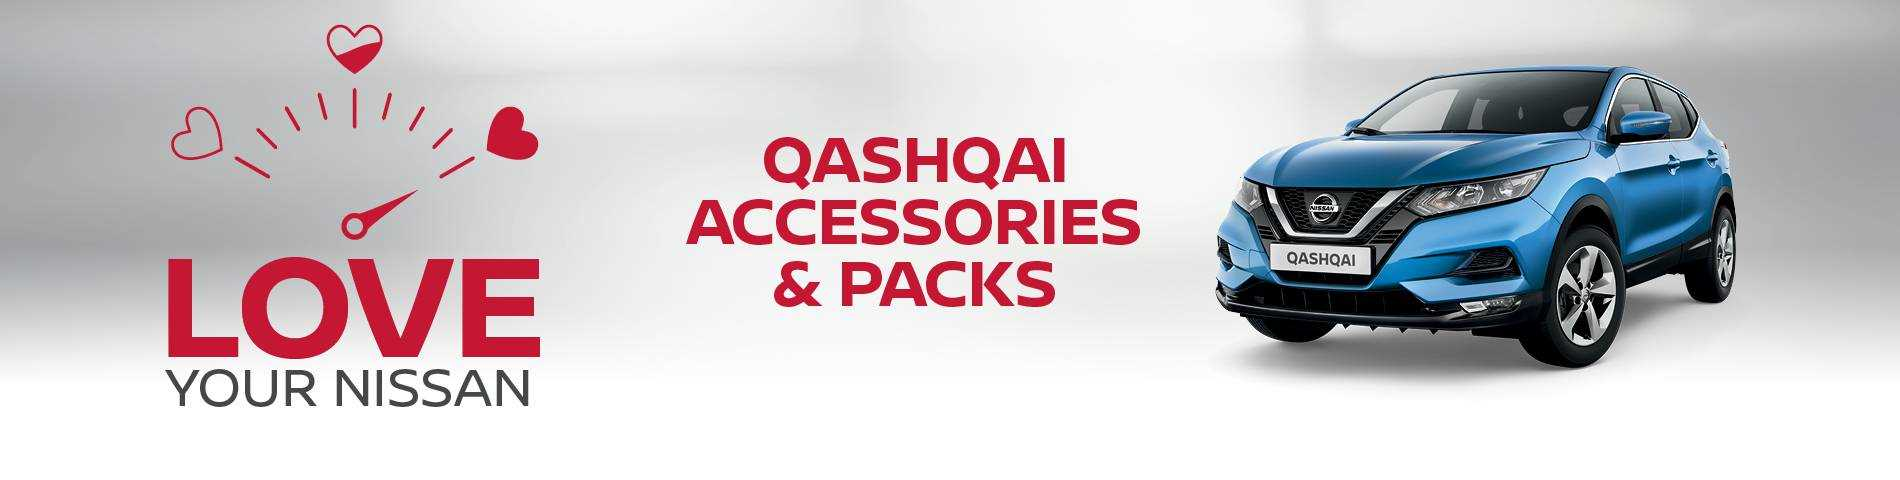 Qashqai Accessories and Packs